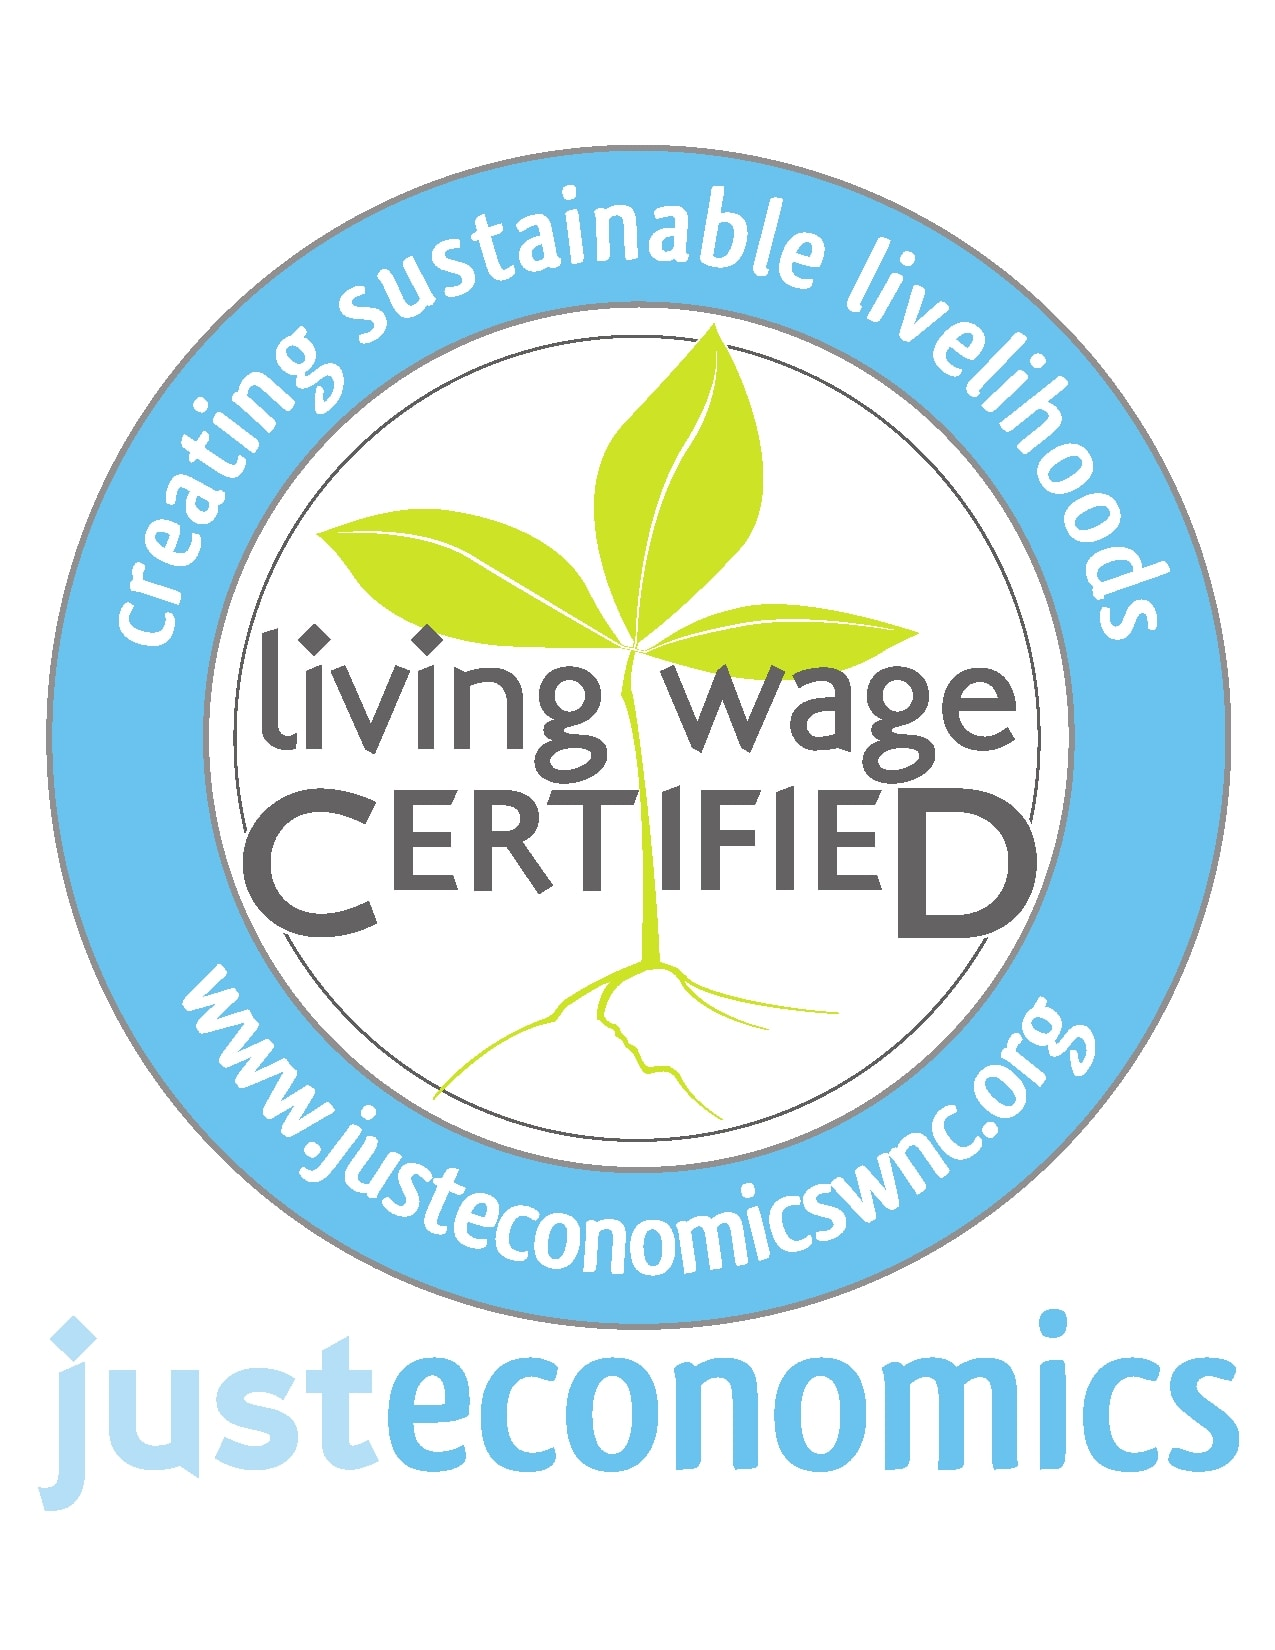 Just Economics logo